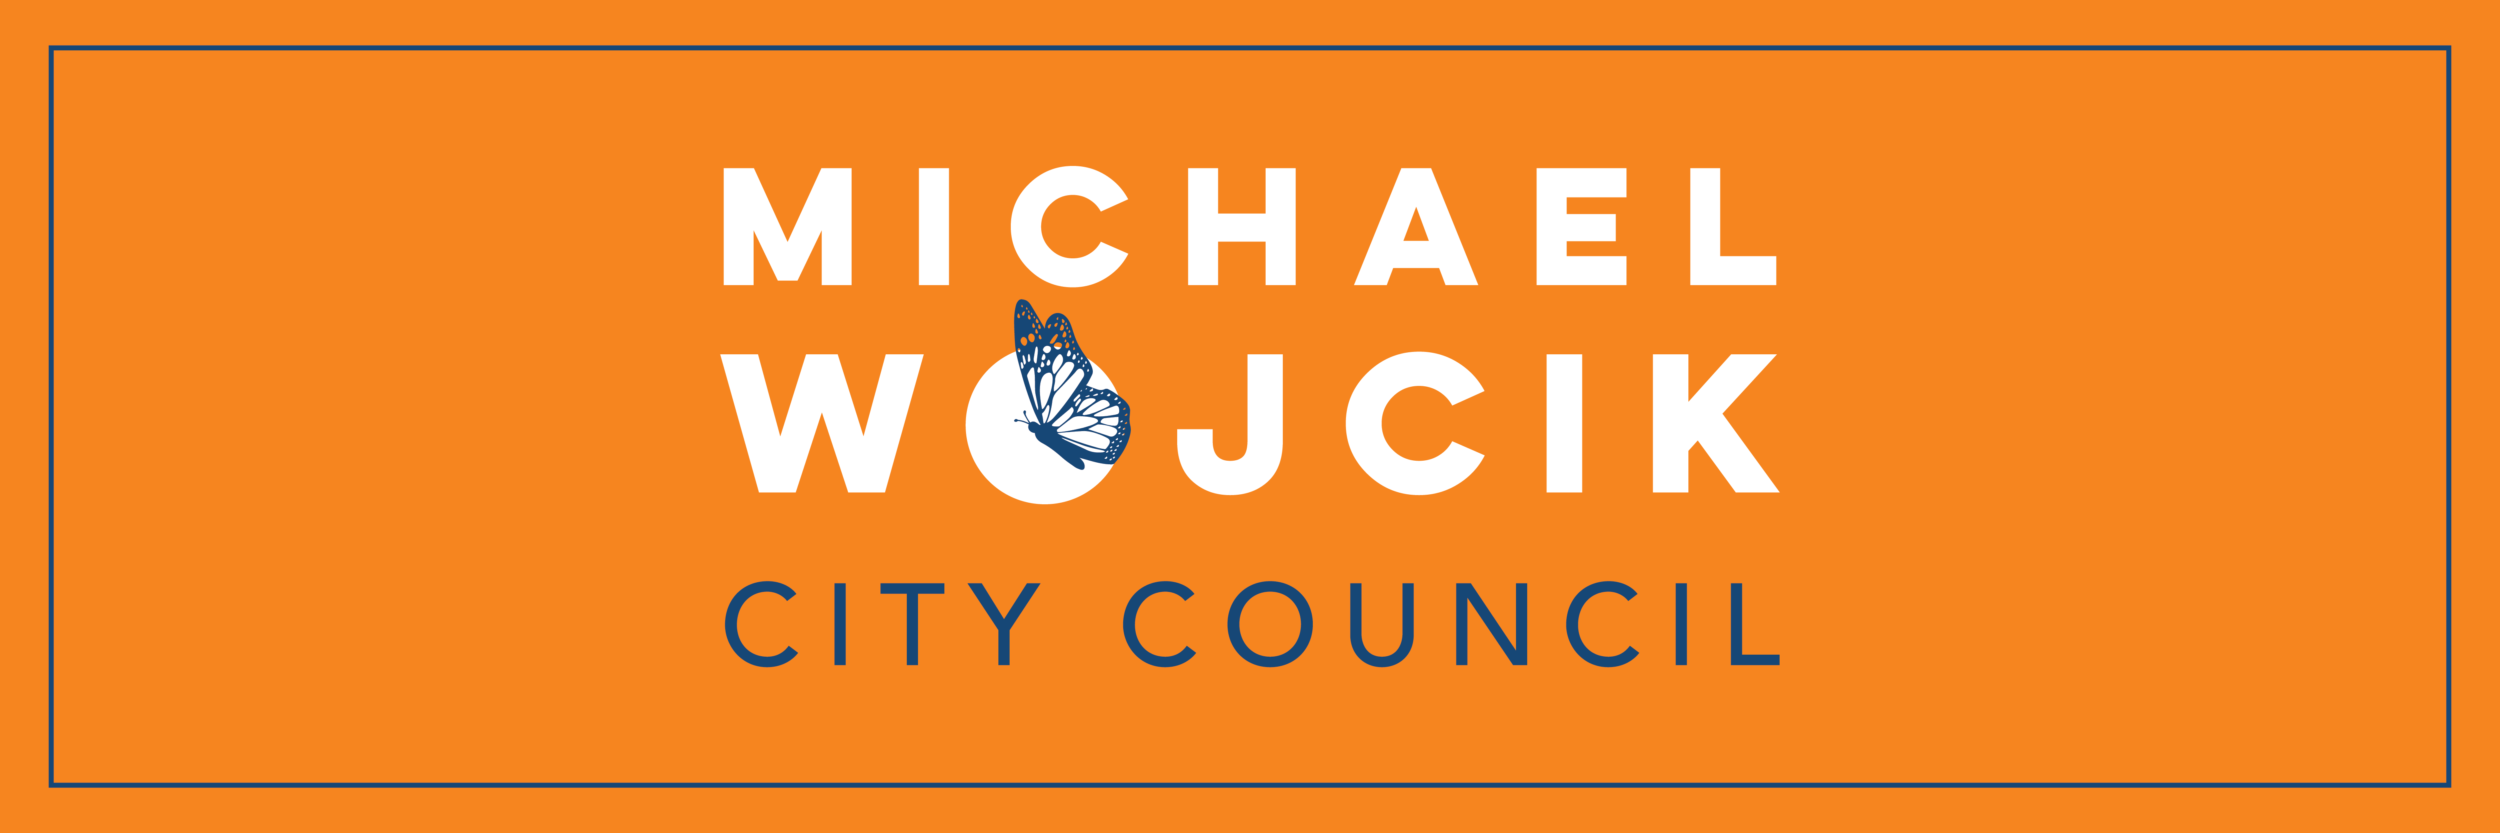 City Councilman Michael Wojcik